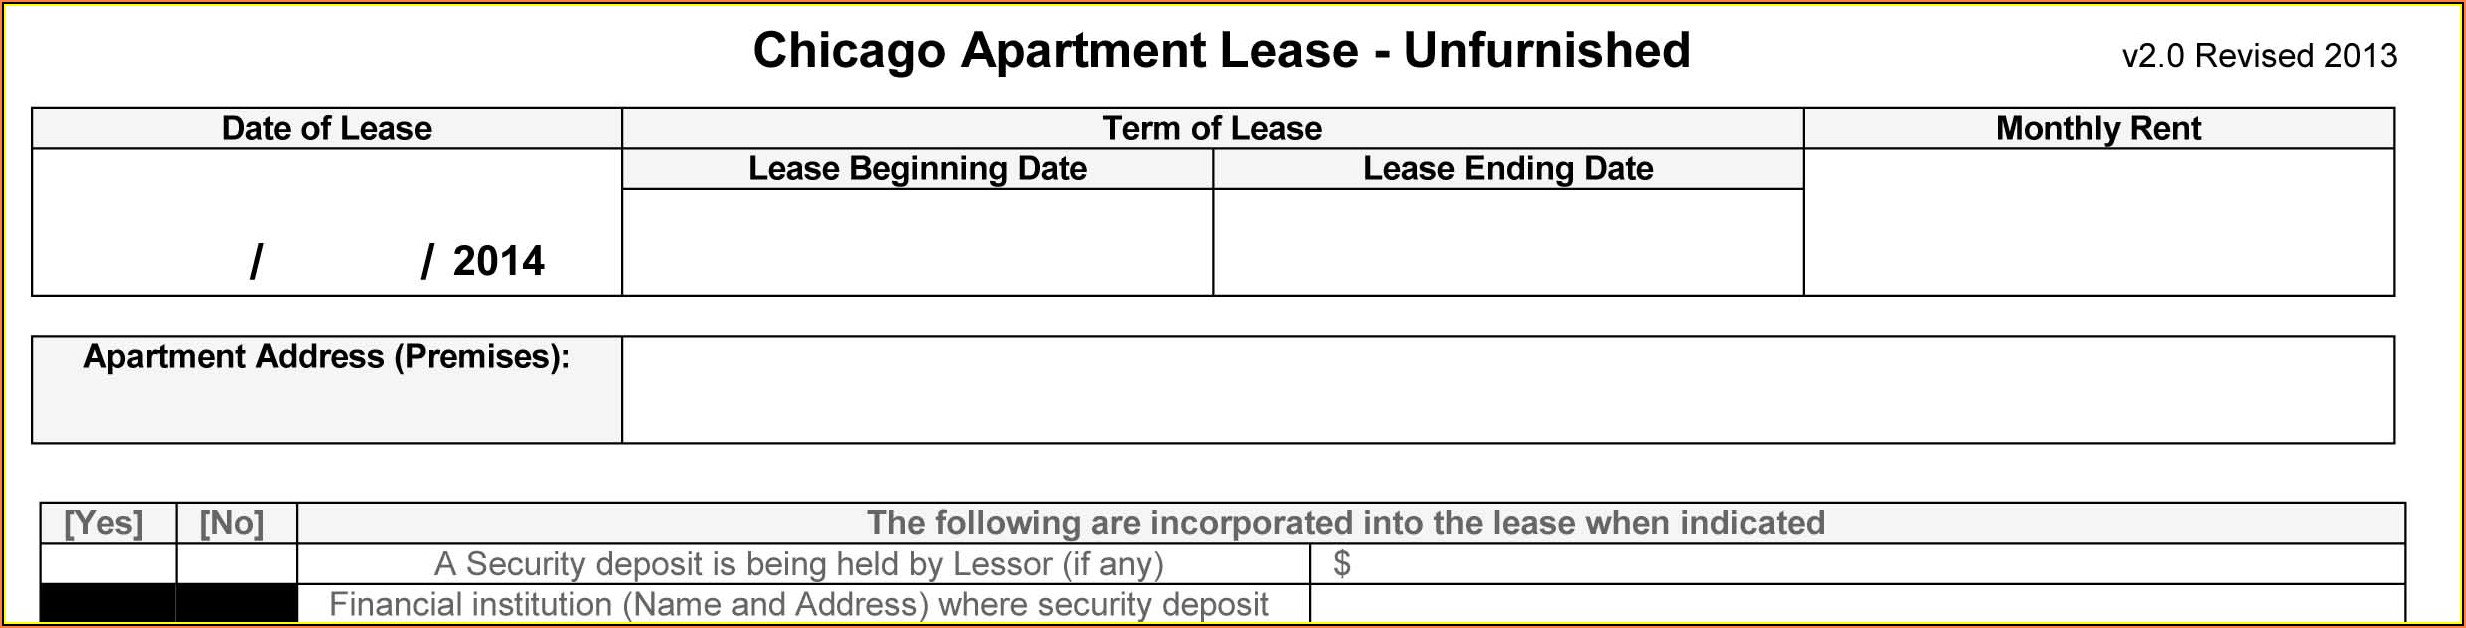 Unfurnished Chicago Apartment Lease Form